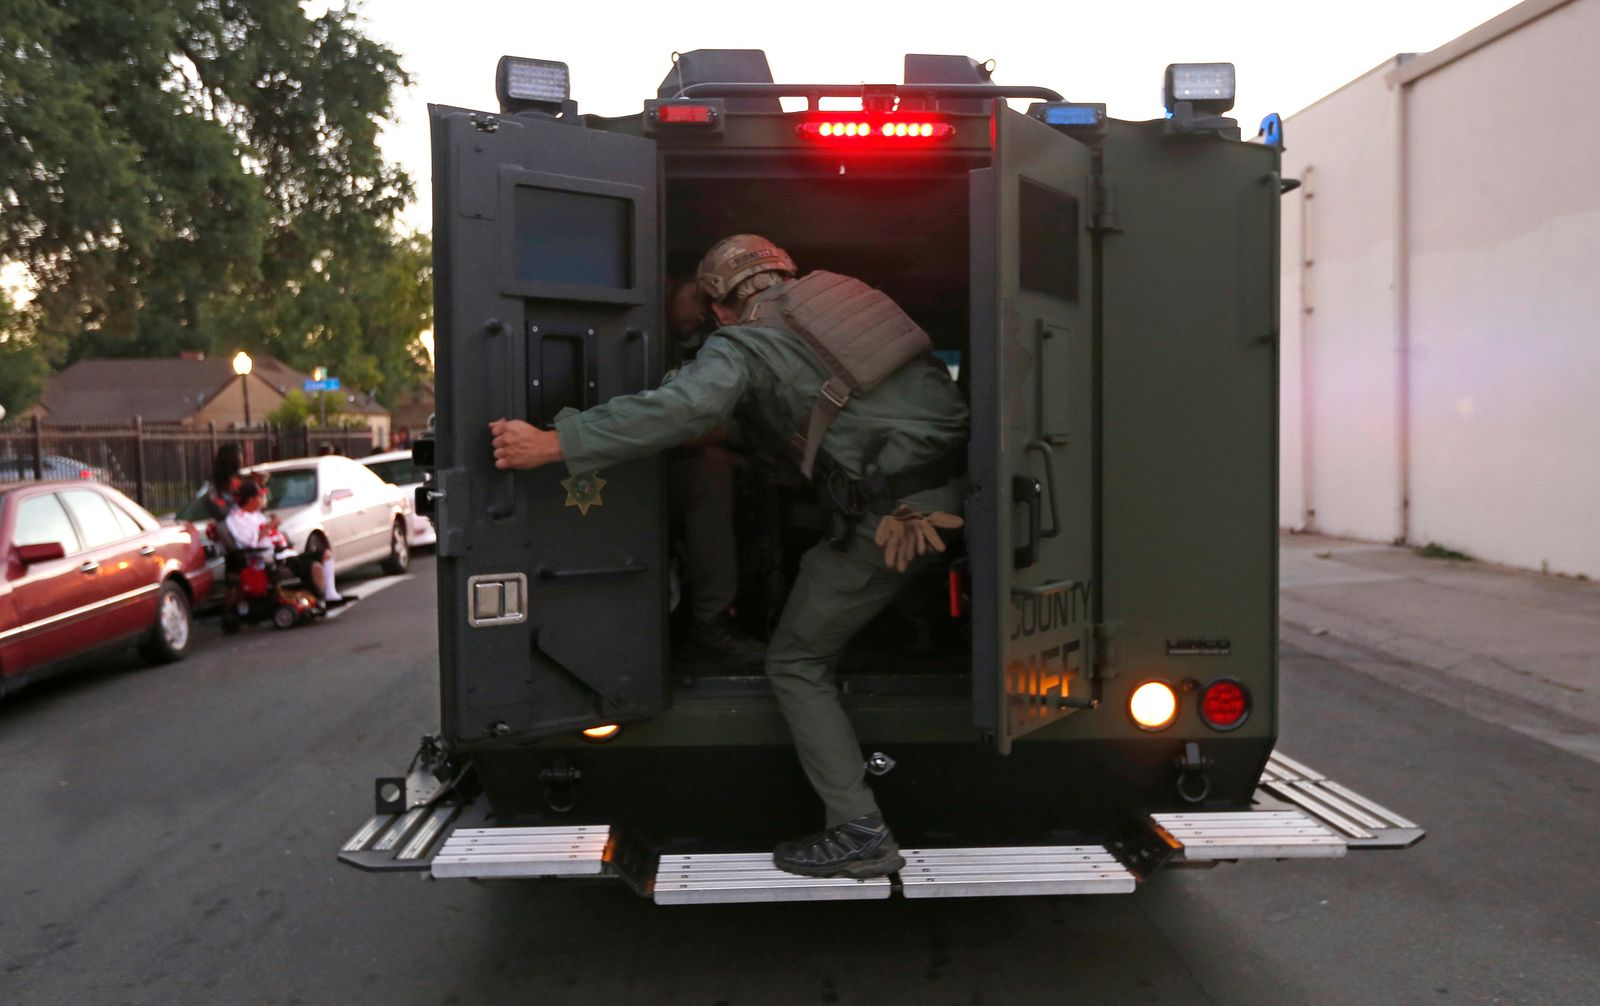 A law enforcement officer climbs into a tactical vehicle during a standoff with an armed suspect who has taken refuge after shooting a Sacramento police officer, Wednesday, June 19, 2019, in Sacramento, Calif. (AP Photo/Rich Pedroncelli)